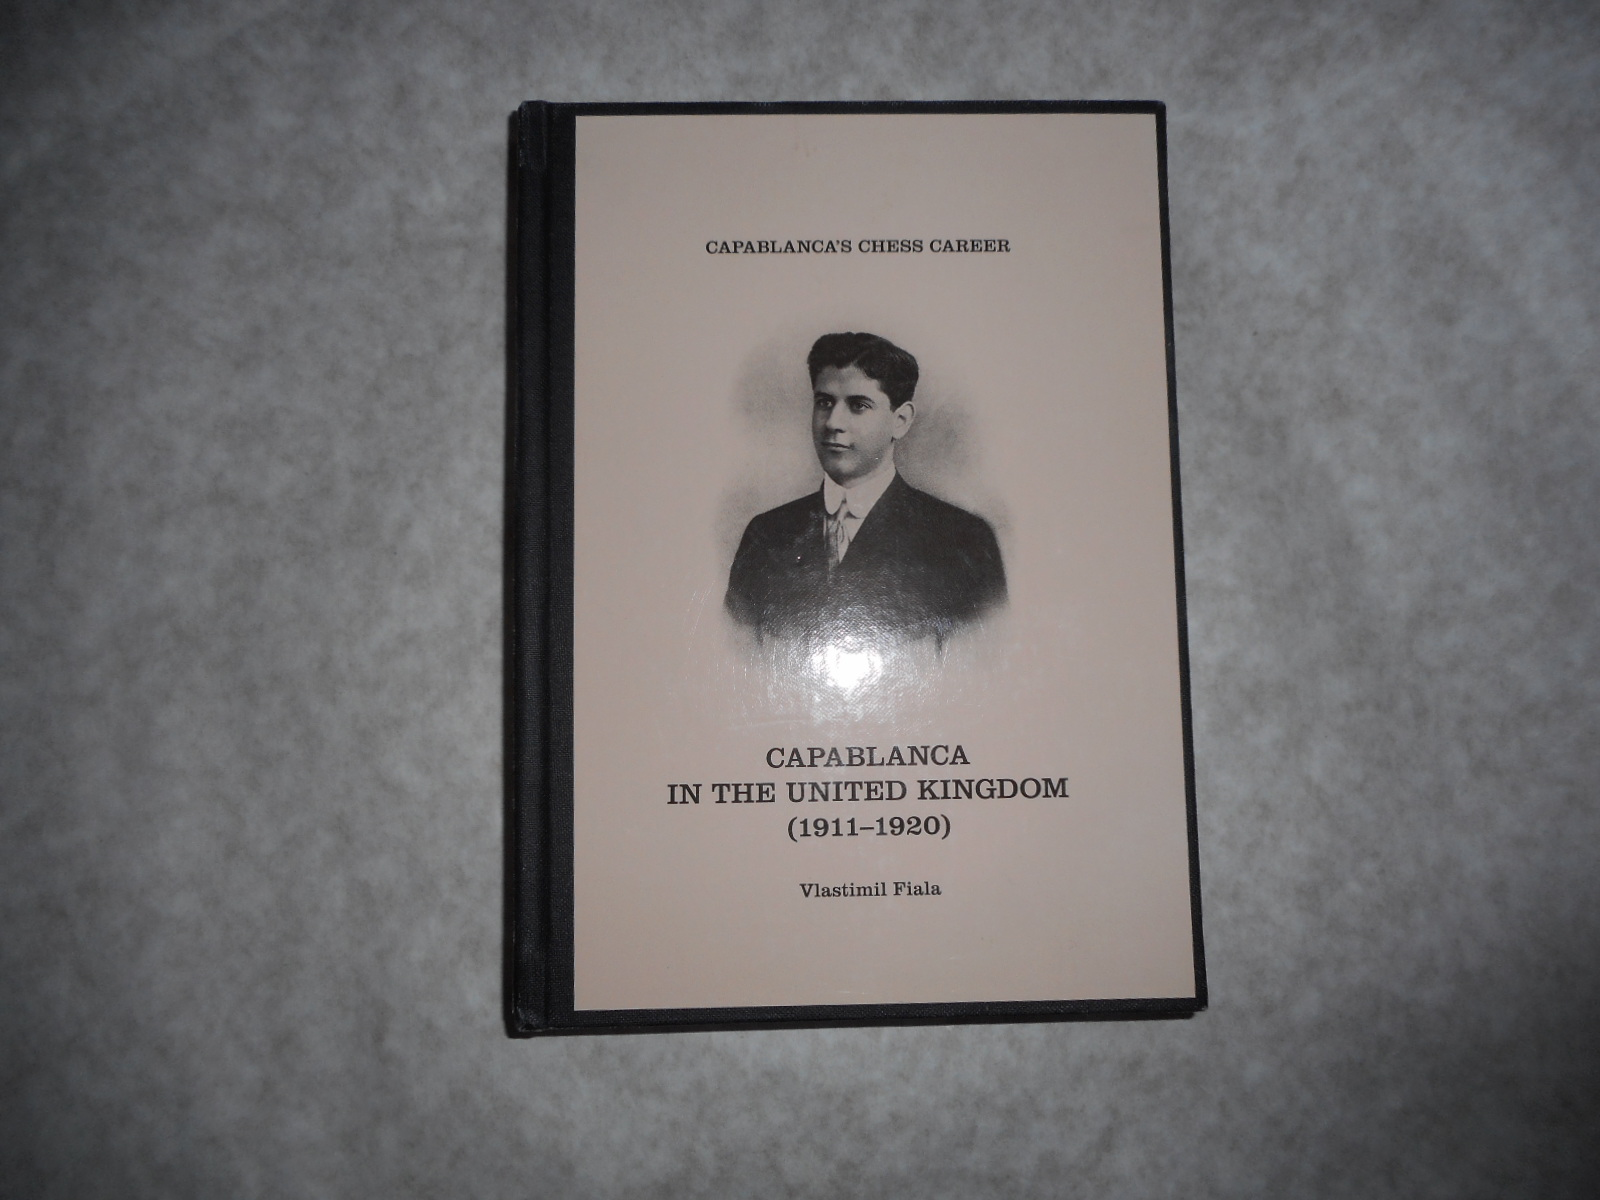 Image for Capablanca's Chess Career. Capablanca in the United Kingdom 1911-1920.